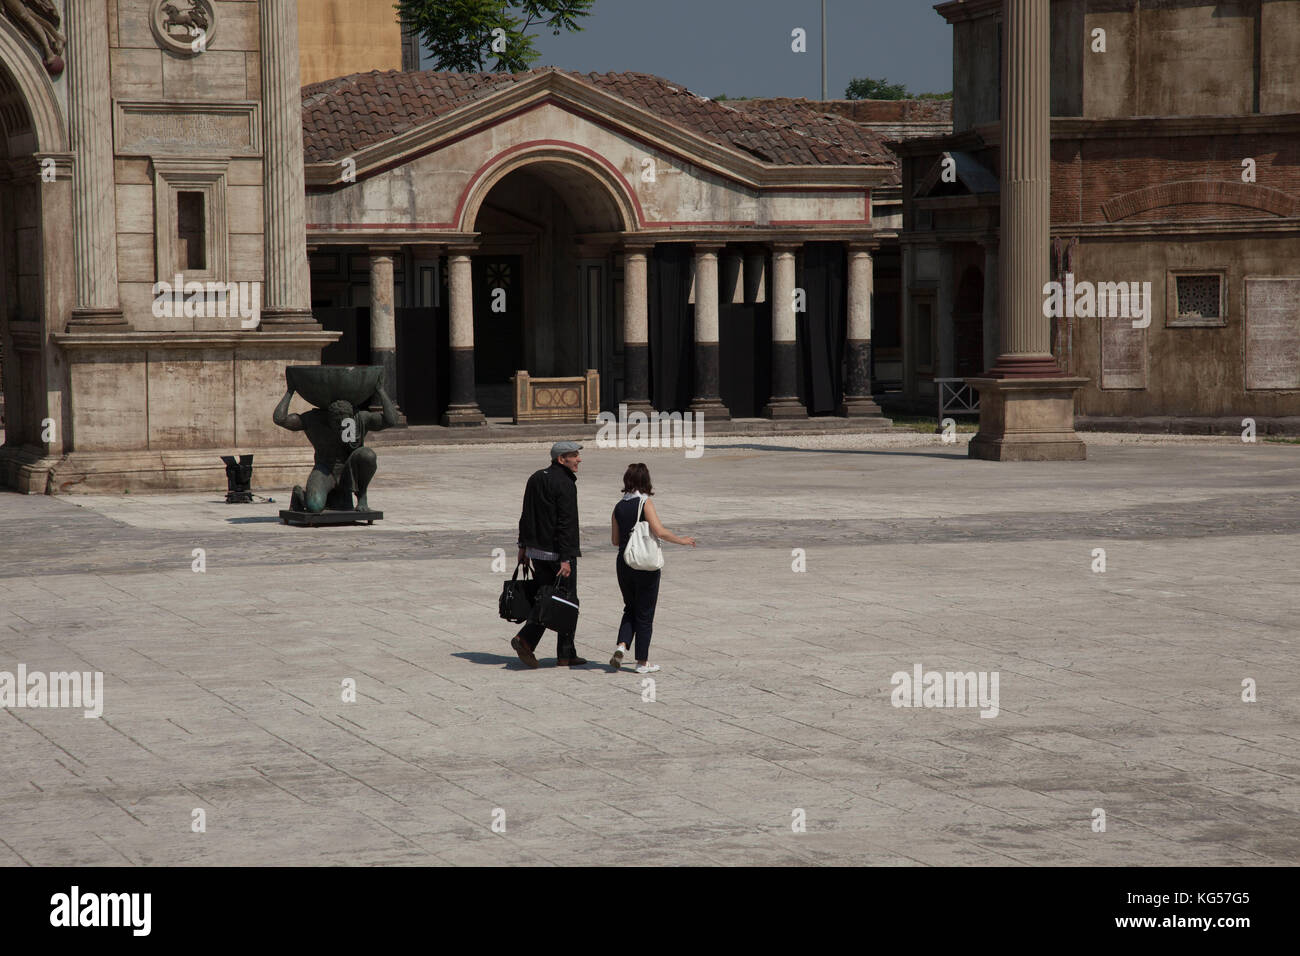 A man and a woman walk across the Roman set at the Cinecittà film studios in Rome, Italy. - Stock Image